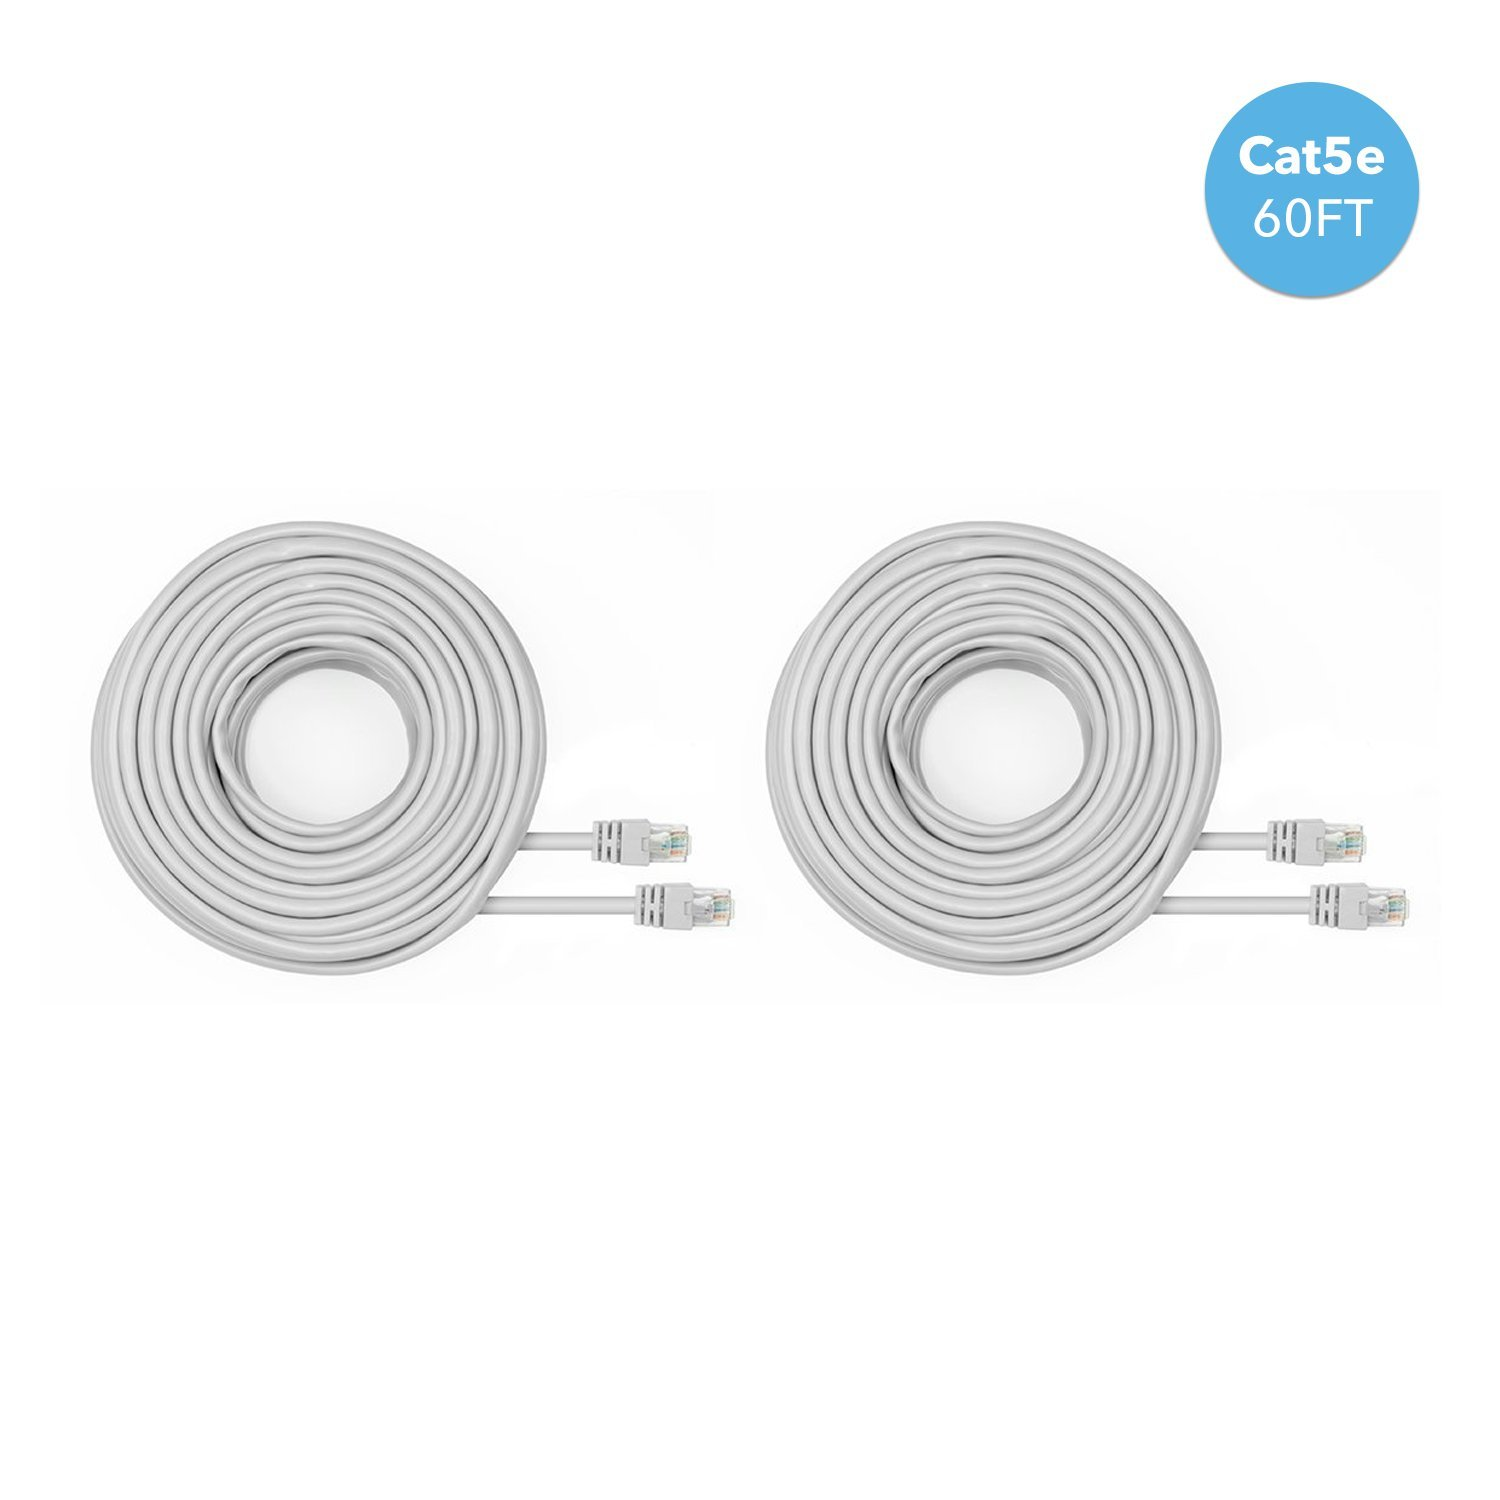 Amcrest Cat5e Cable 60ft Ethernet Cable Internet High Speed Network Cable for POE Security Cameras, Smart TV, PS4, Xbox One, Router, Laptop, Computer, Home (2PACK-CAT5ECABLE60)